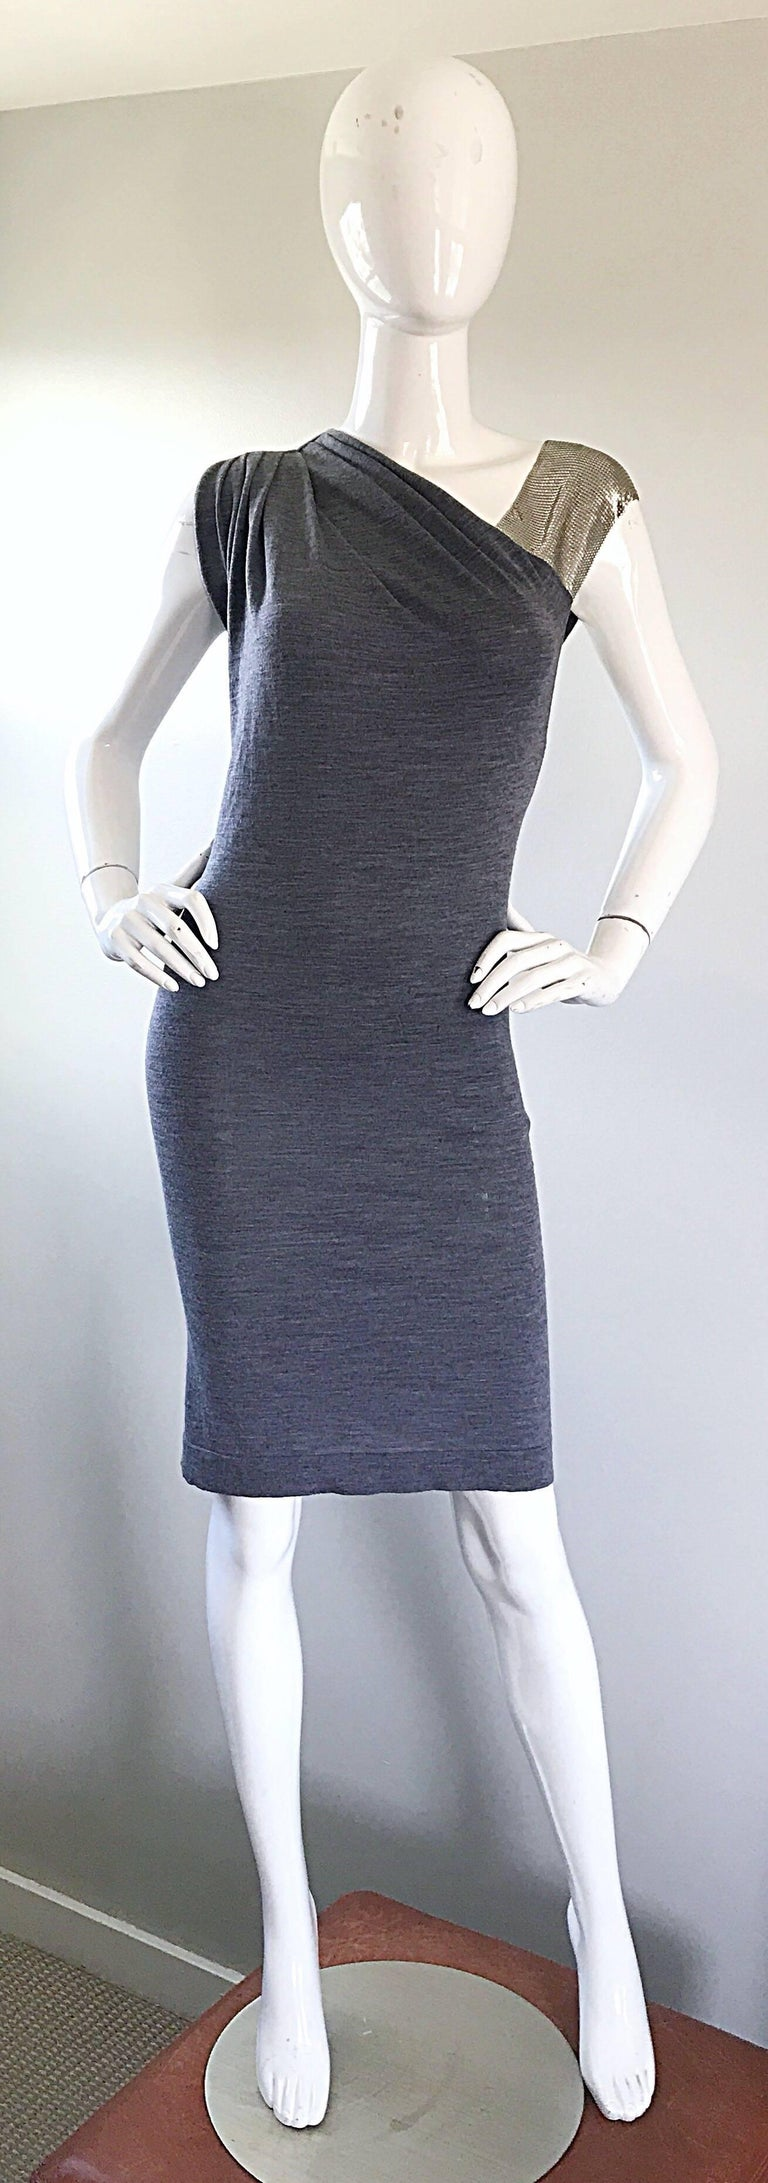 Brand new with tags PIERRE BALMAIN gray wool and cashmere one shoulder chain mail cocktail dress! Features one shoulder of metal mesh chainmail, produced by Whiting & Davis. Super soft and luxurious wool and cashmere blend. Simply slips over the